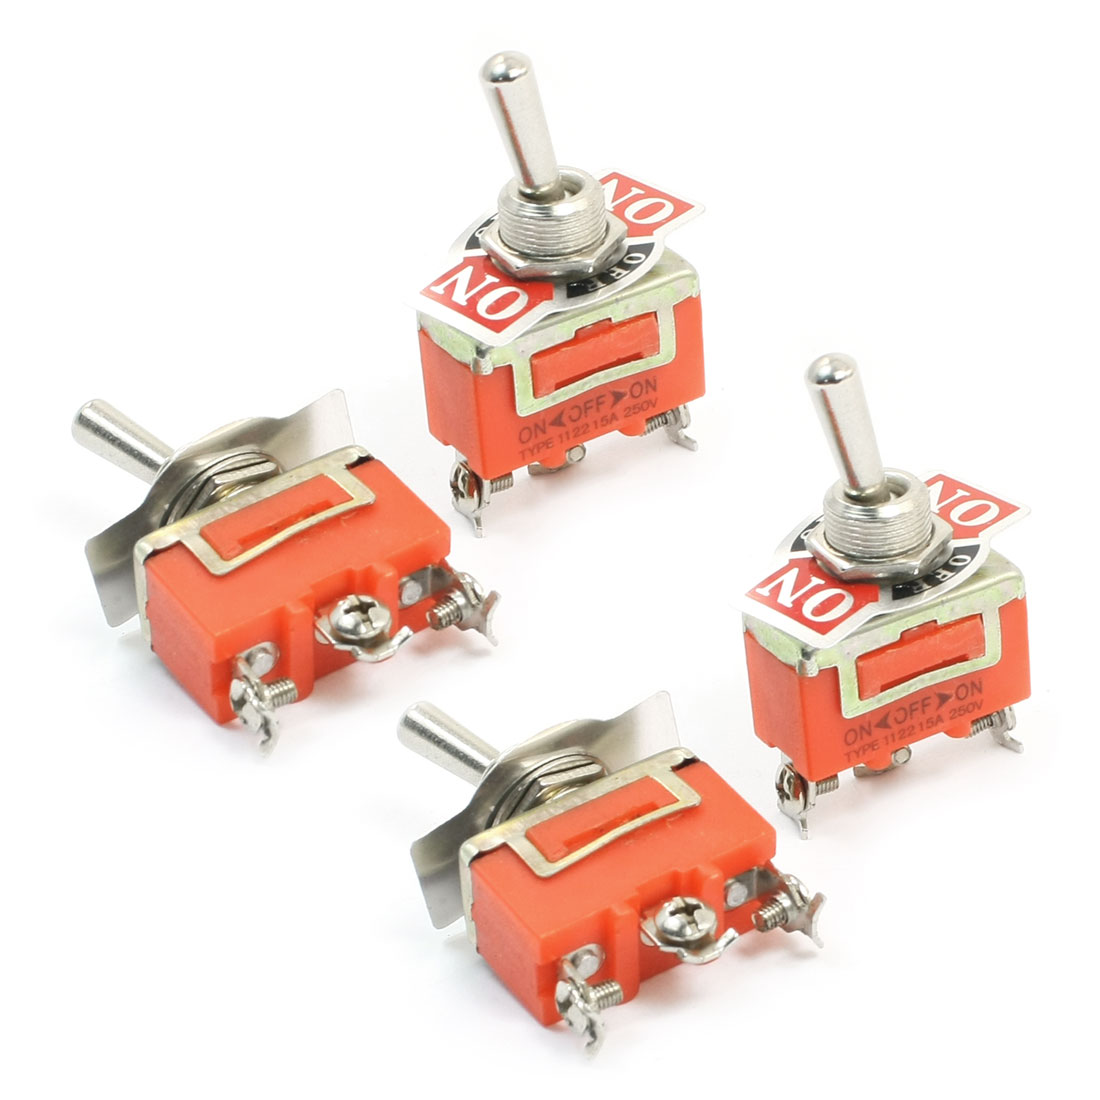 Spare Parts AC 250V 15A ON/OFF/ON 3 Positions 3 Pin Toggle Switch E-TEN1122 4pcs